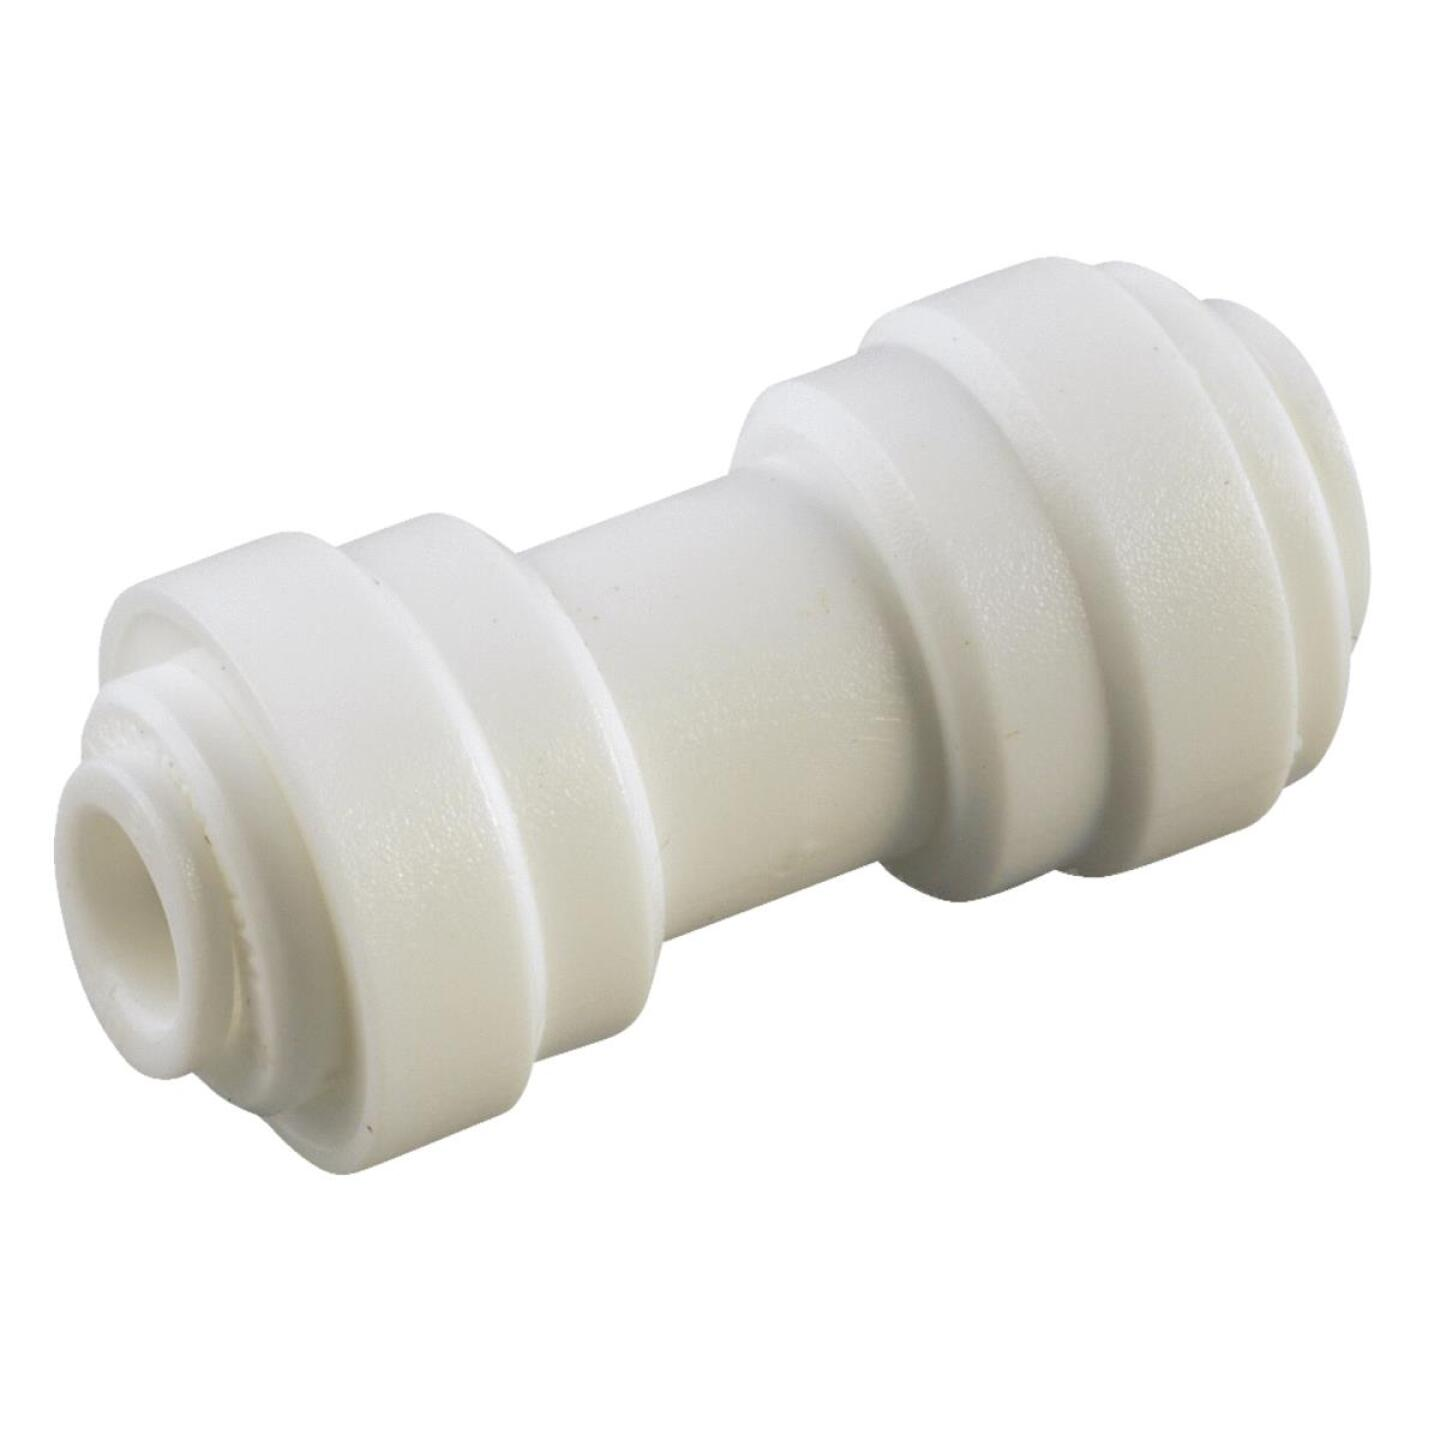 Anderson Metals 1/2 In. x 3/8 In. Reducing Push-In Plastic Coupling Image 1